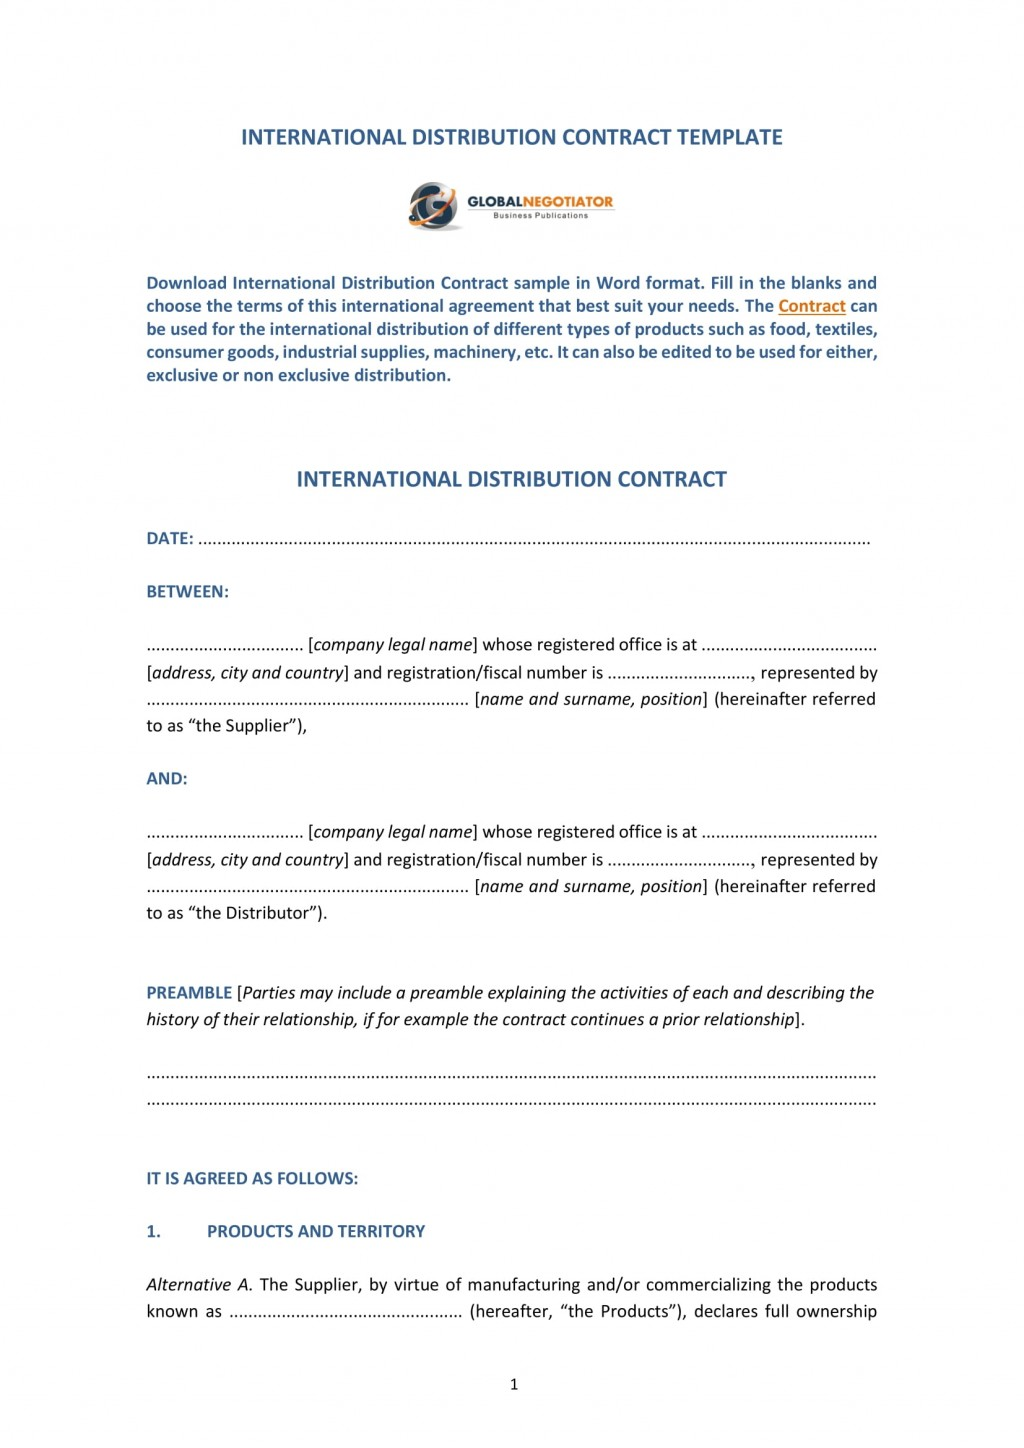 009 Amazing Distribution Agreement Template Word Image  Distributor Exclusive ContractLarge